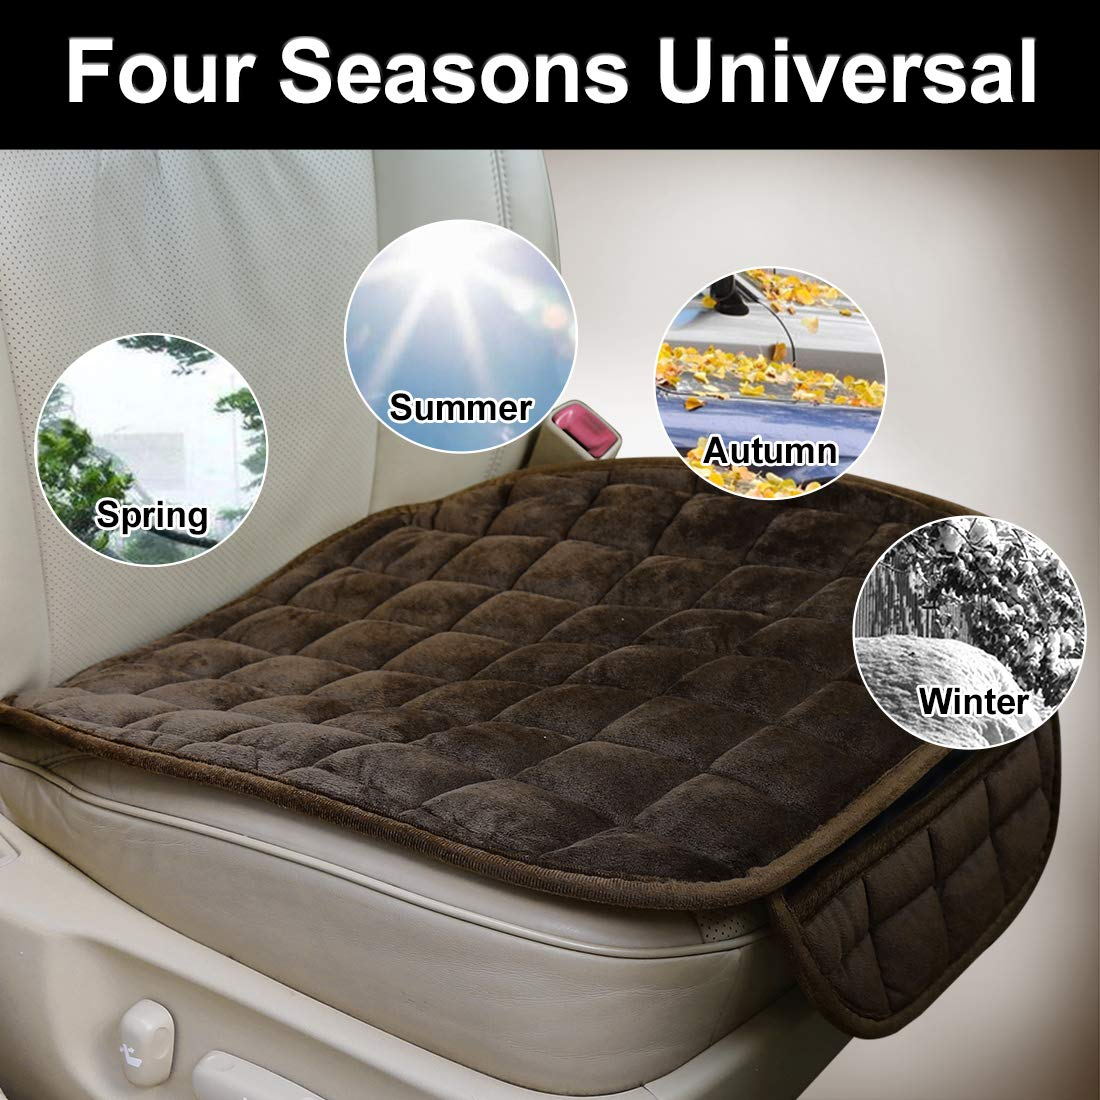 uxcell 2pcs Universal Front Car Seat Cushion Breathable Plush Seat Pad Mat Protector for Automotive Home Chair Brown